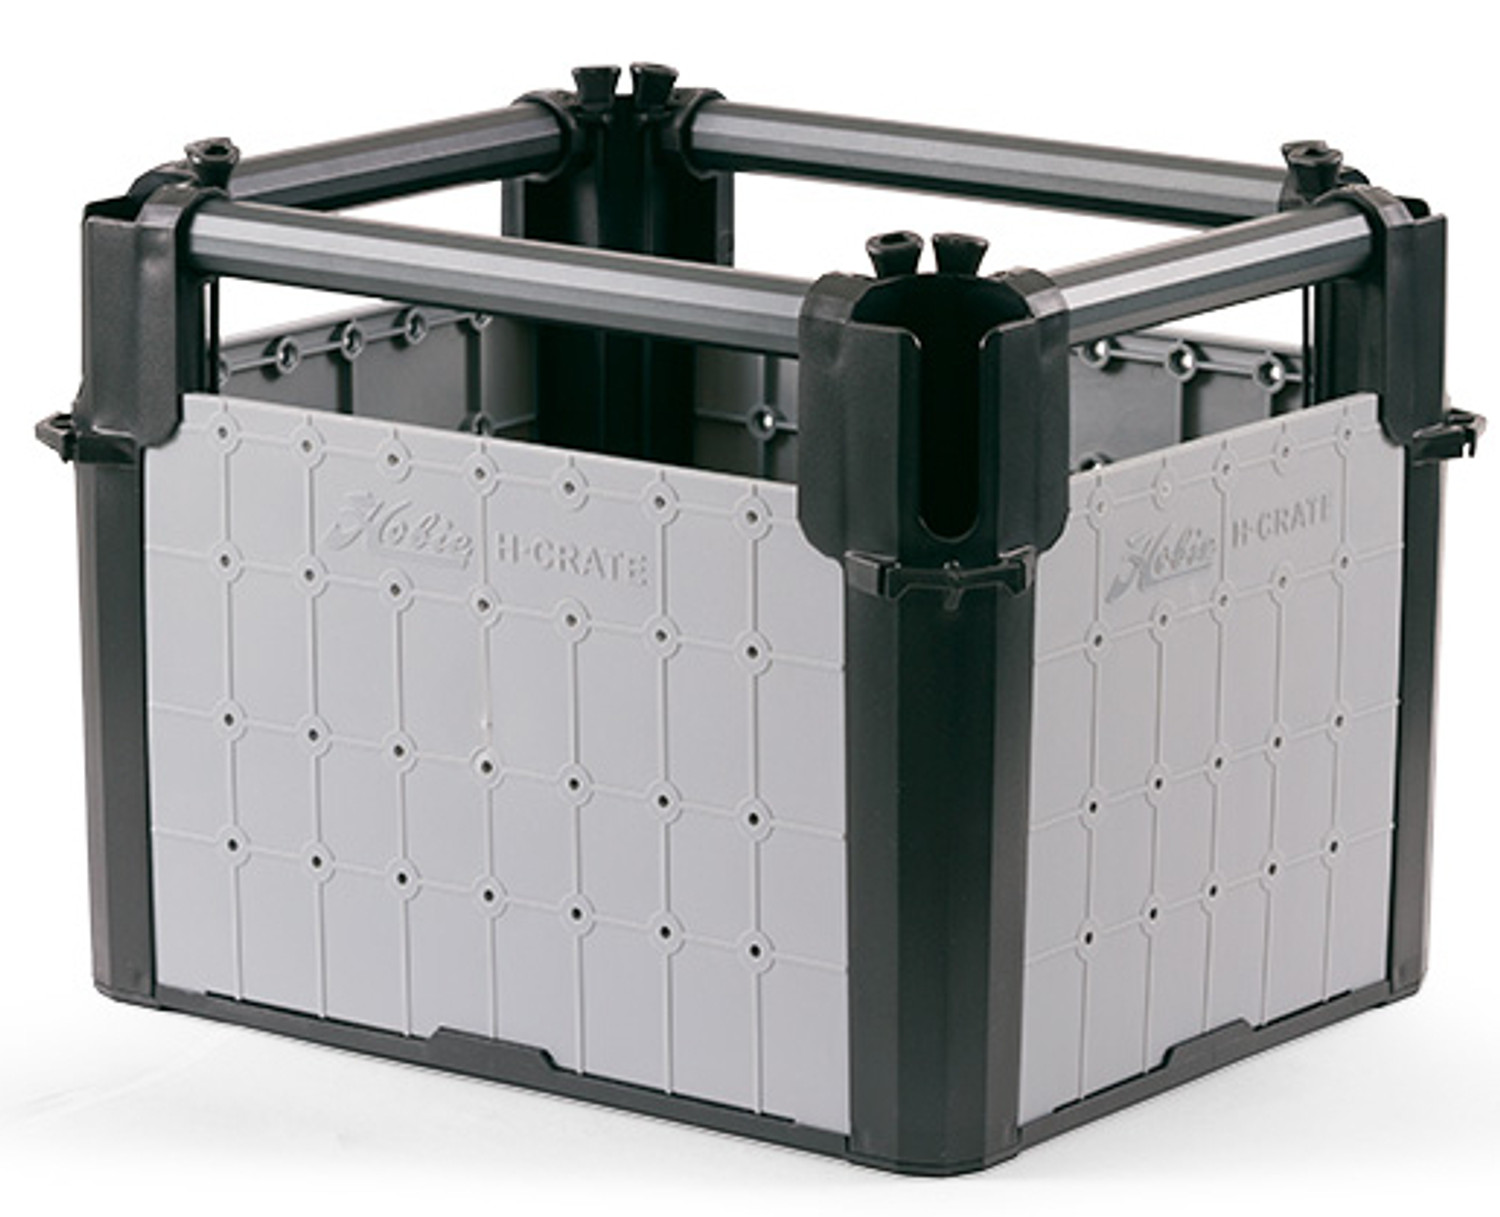 H-Crate Storage System